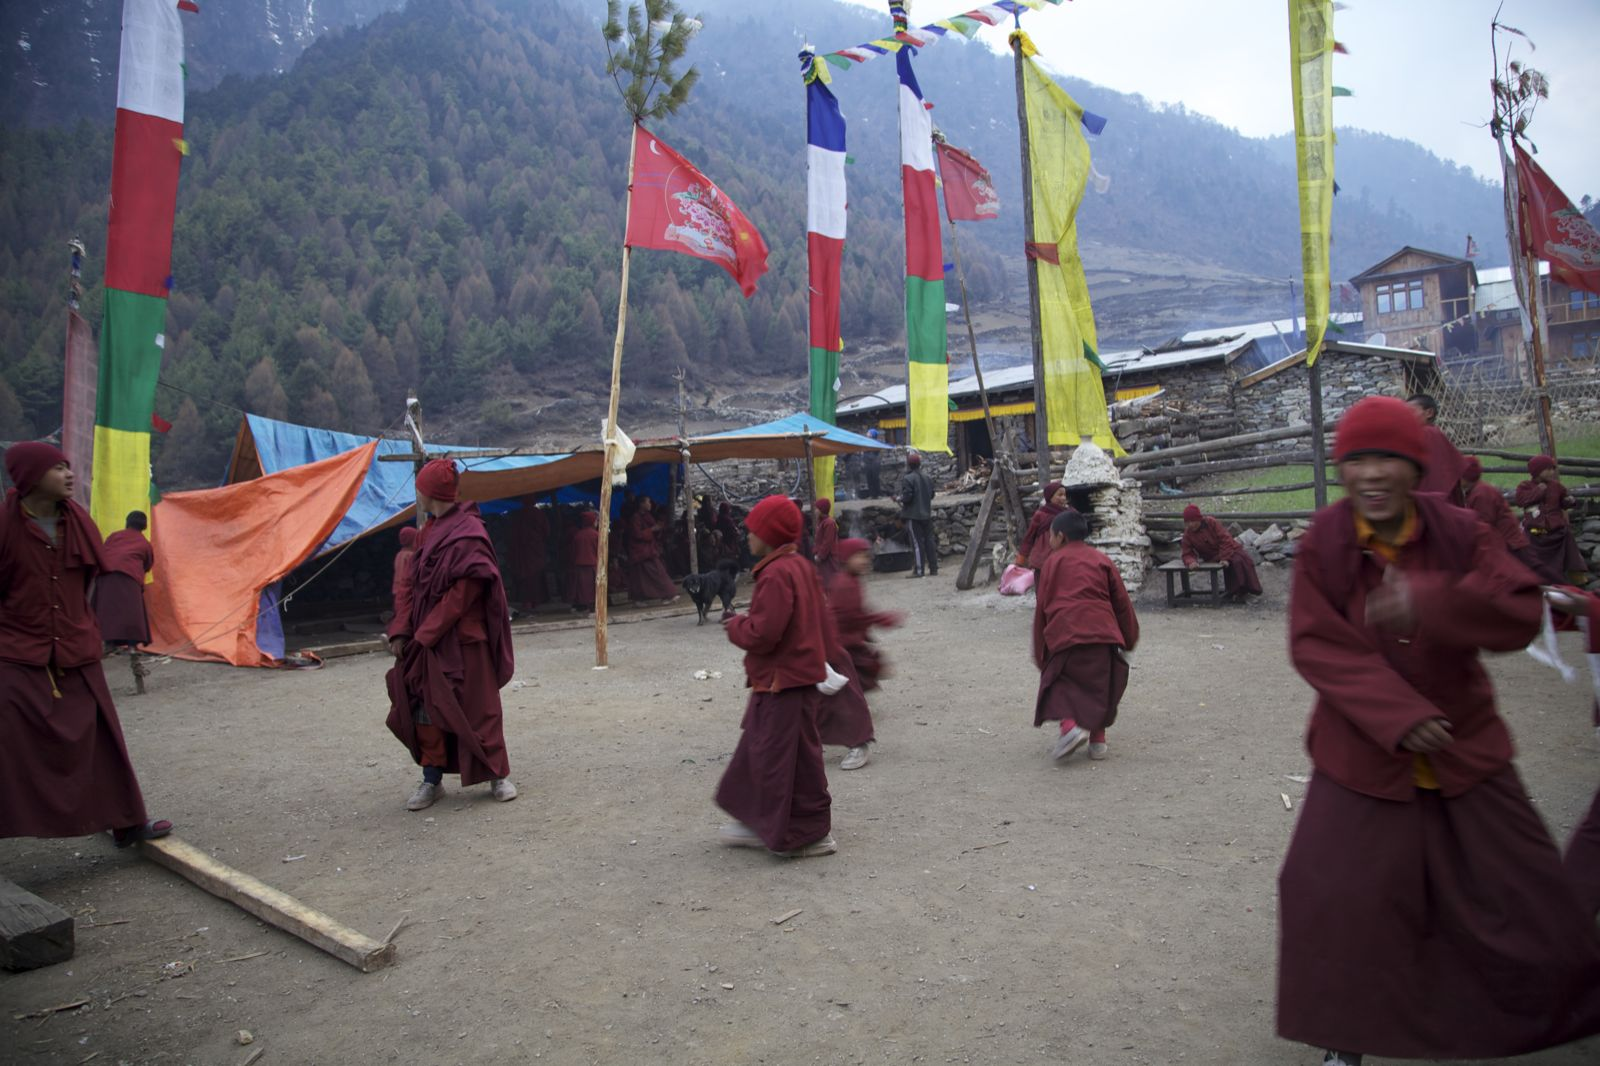 Manaslu trek: monks and monasteries